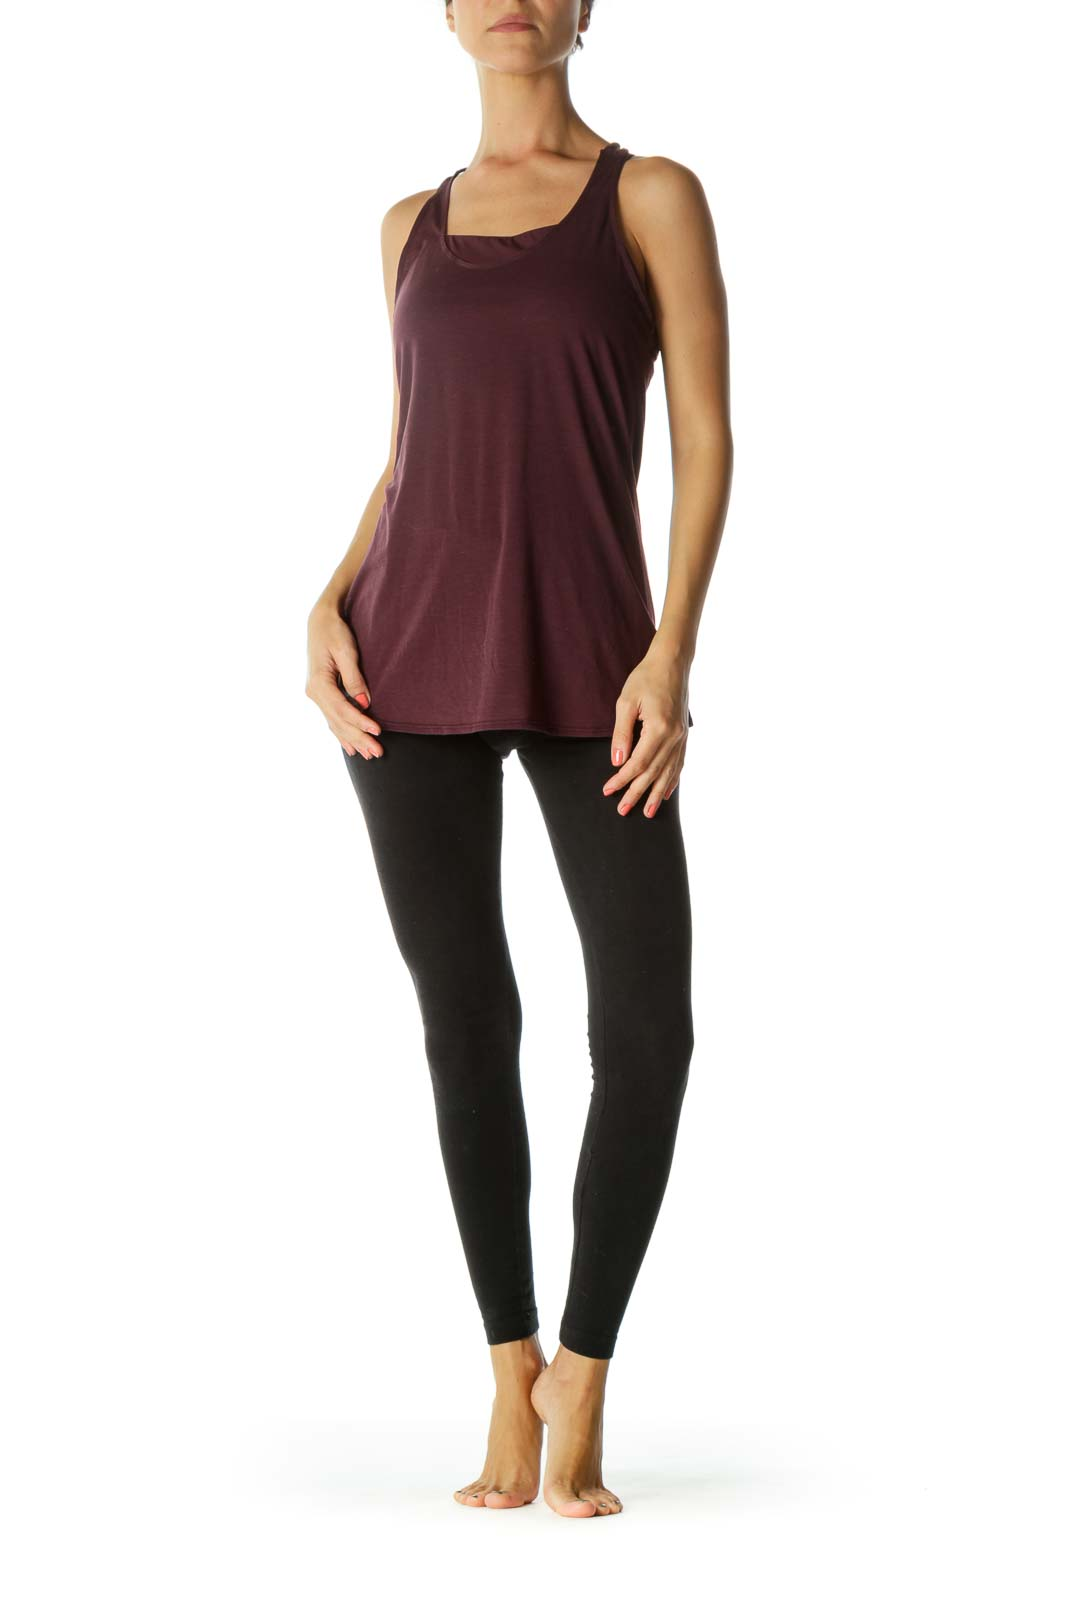 Burgundy 2-in-1 Sports Top